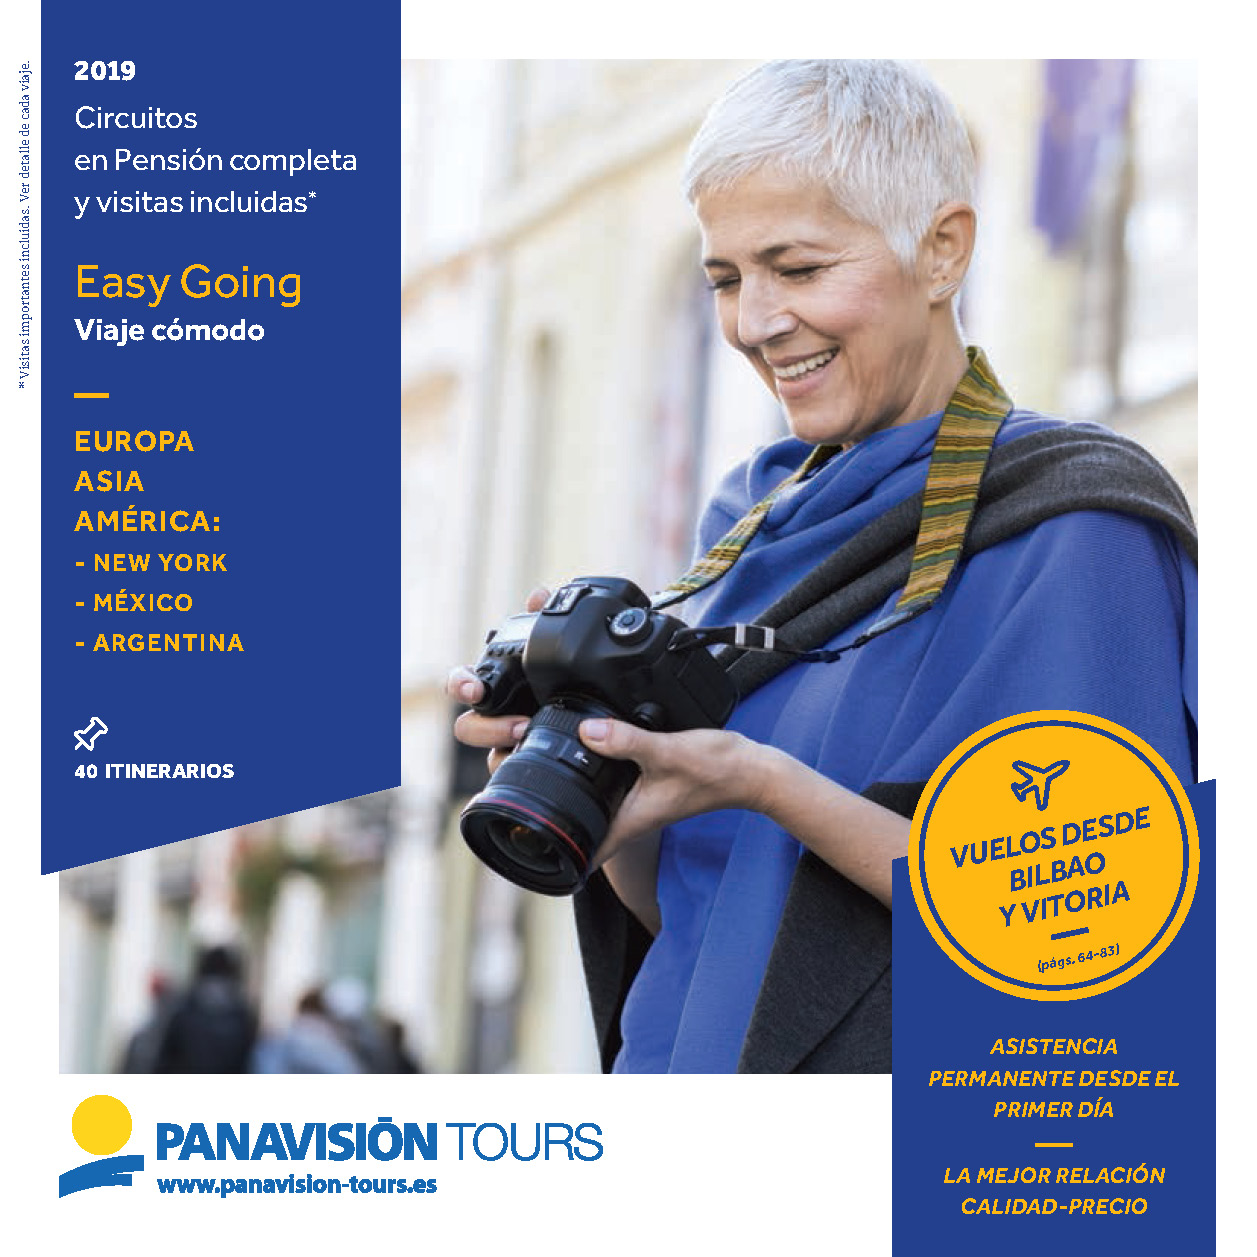 Catalogo Panavision Tours Easy Going 2019 salidas Bilbao y Vitoria EP9